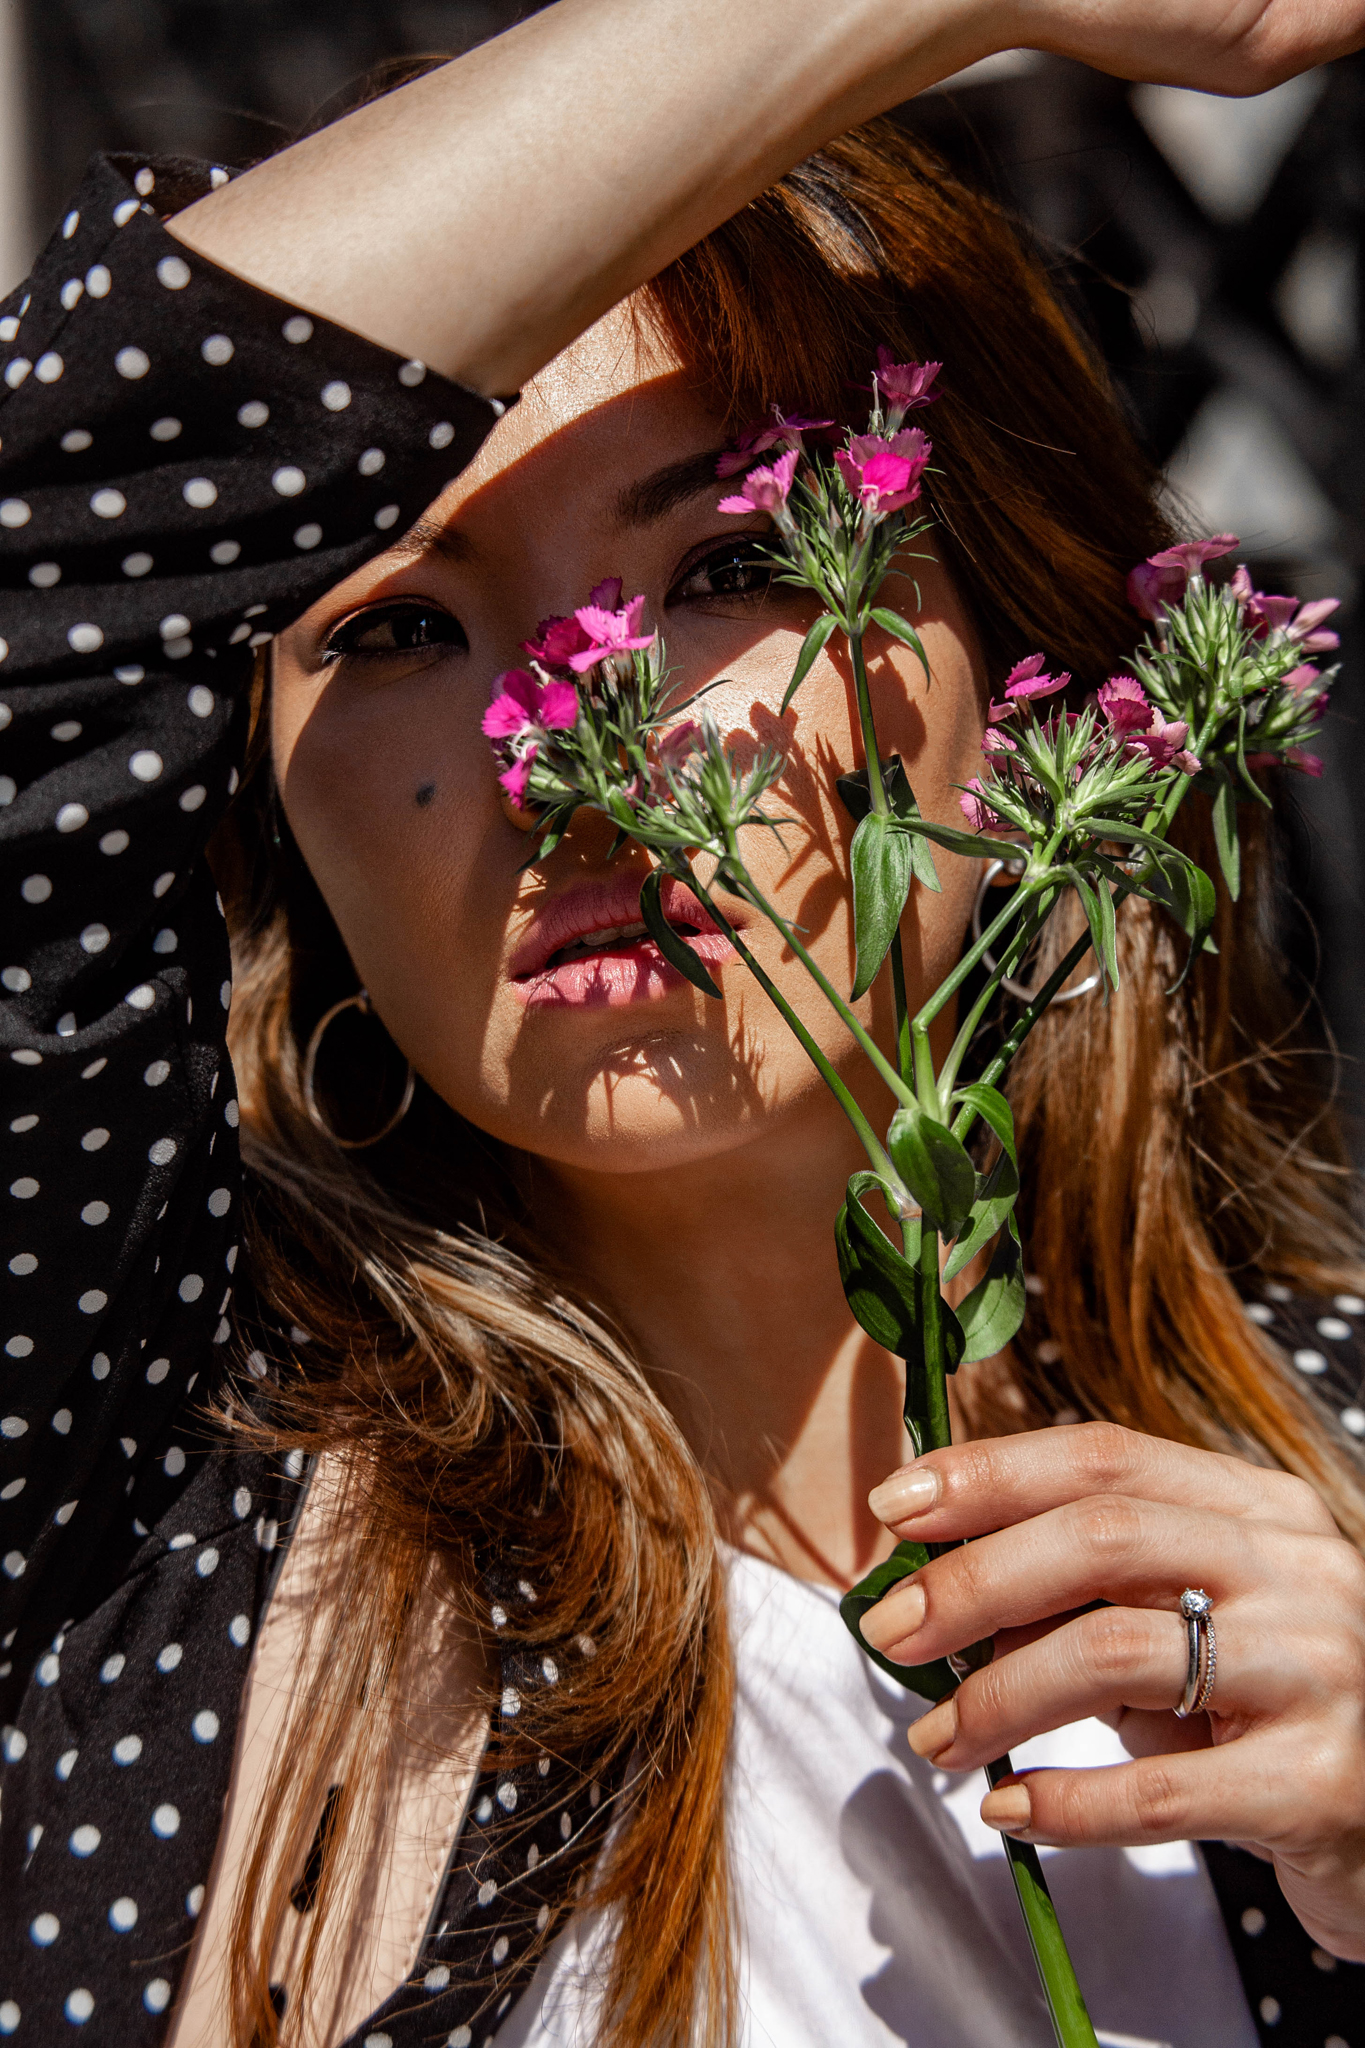 Pink Flowers and Polka Dots Fashion Portrait